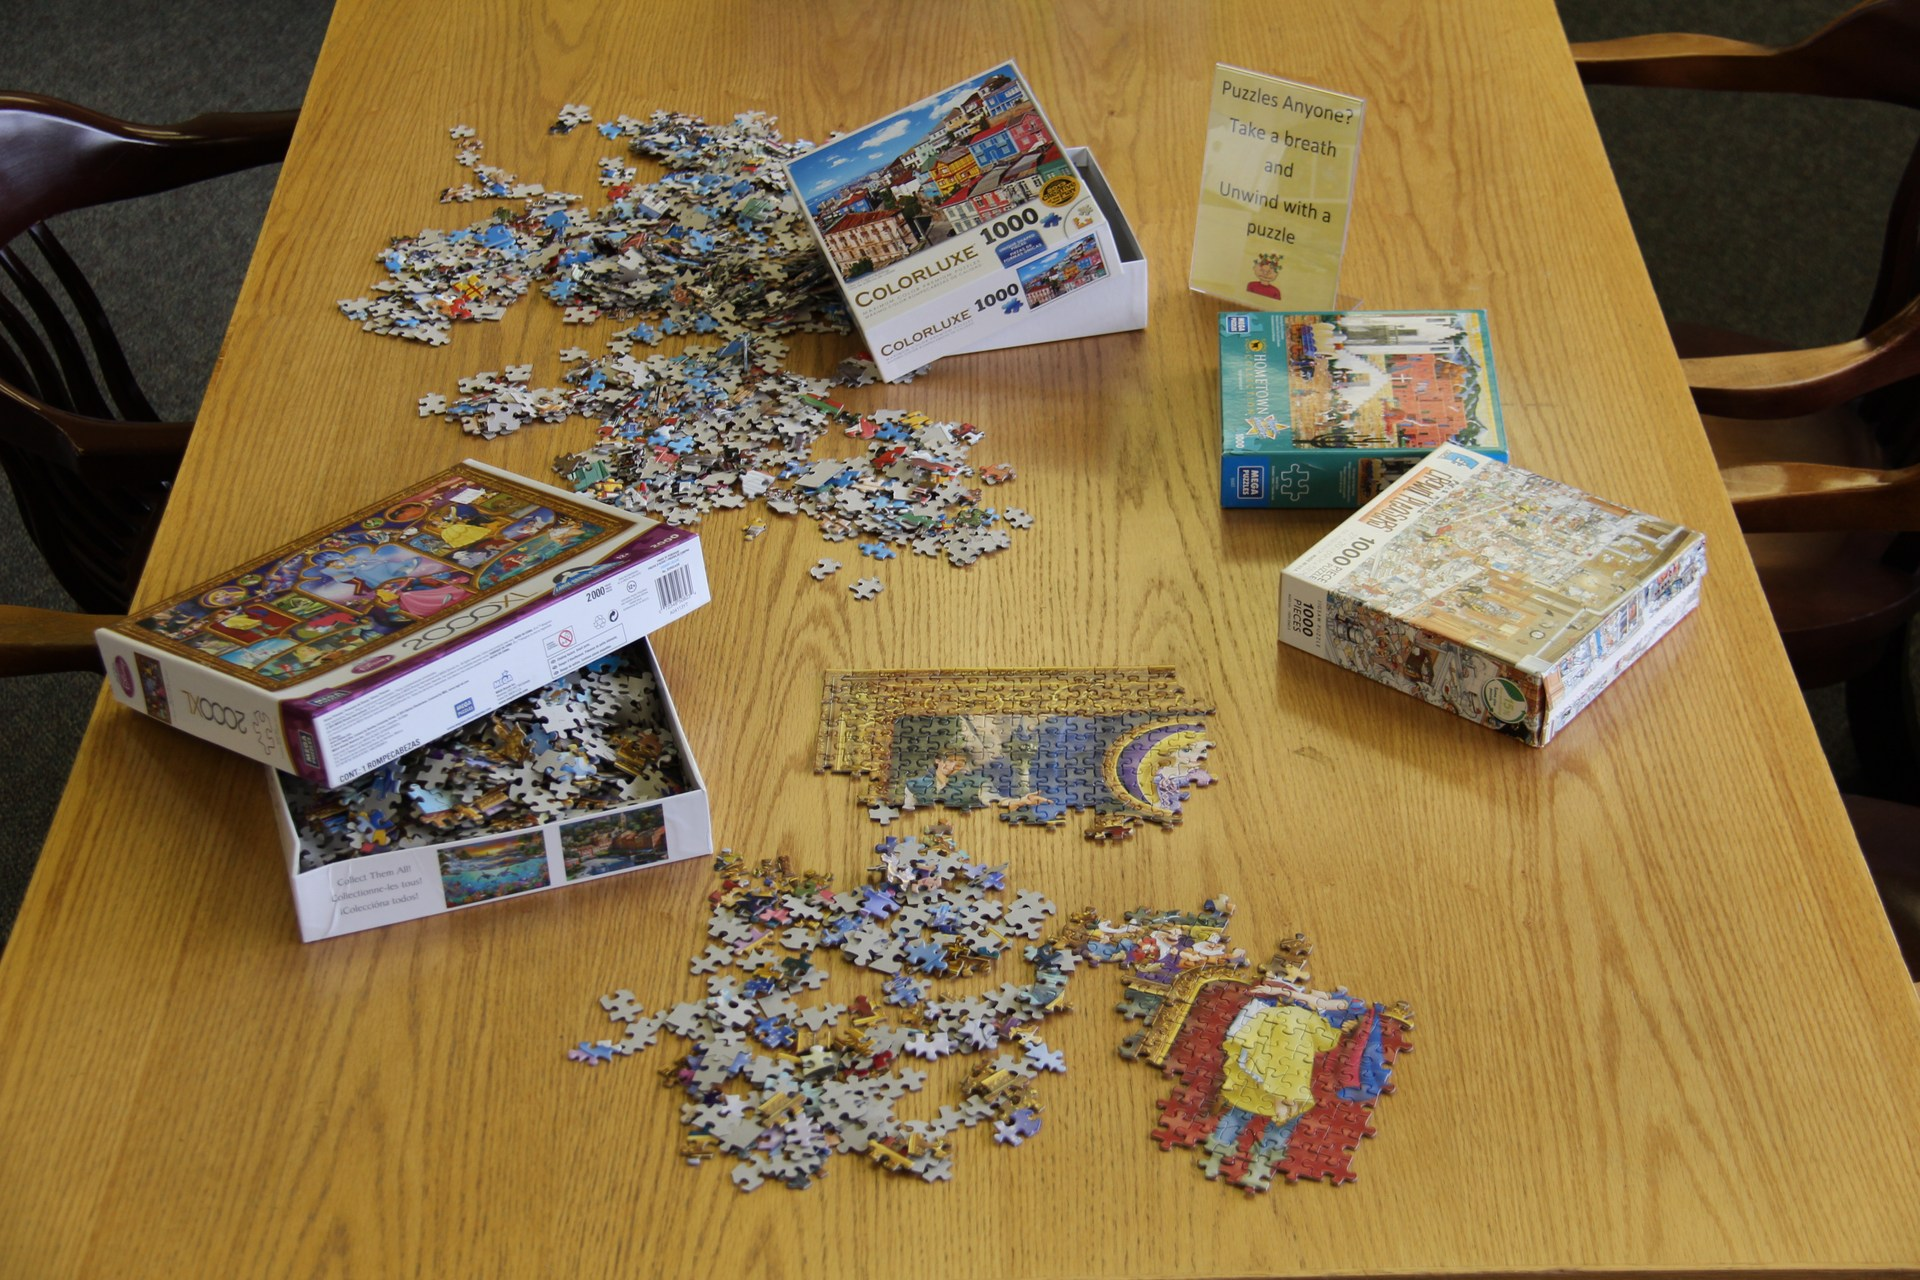 Image of puzzles